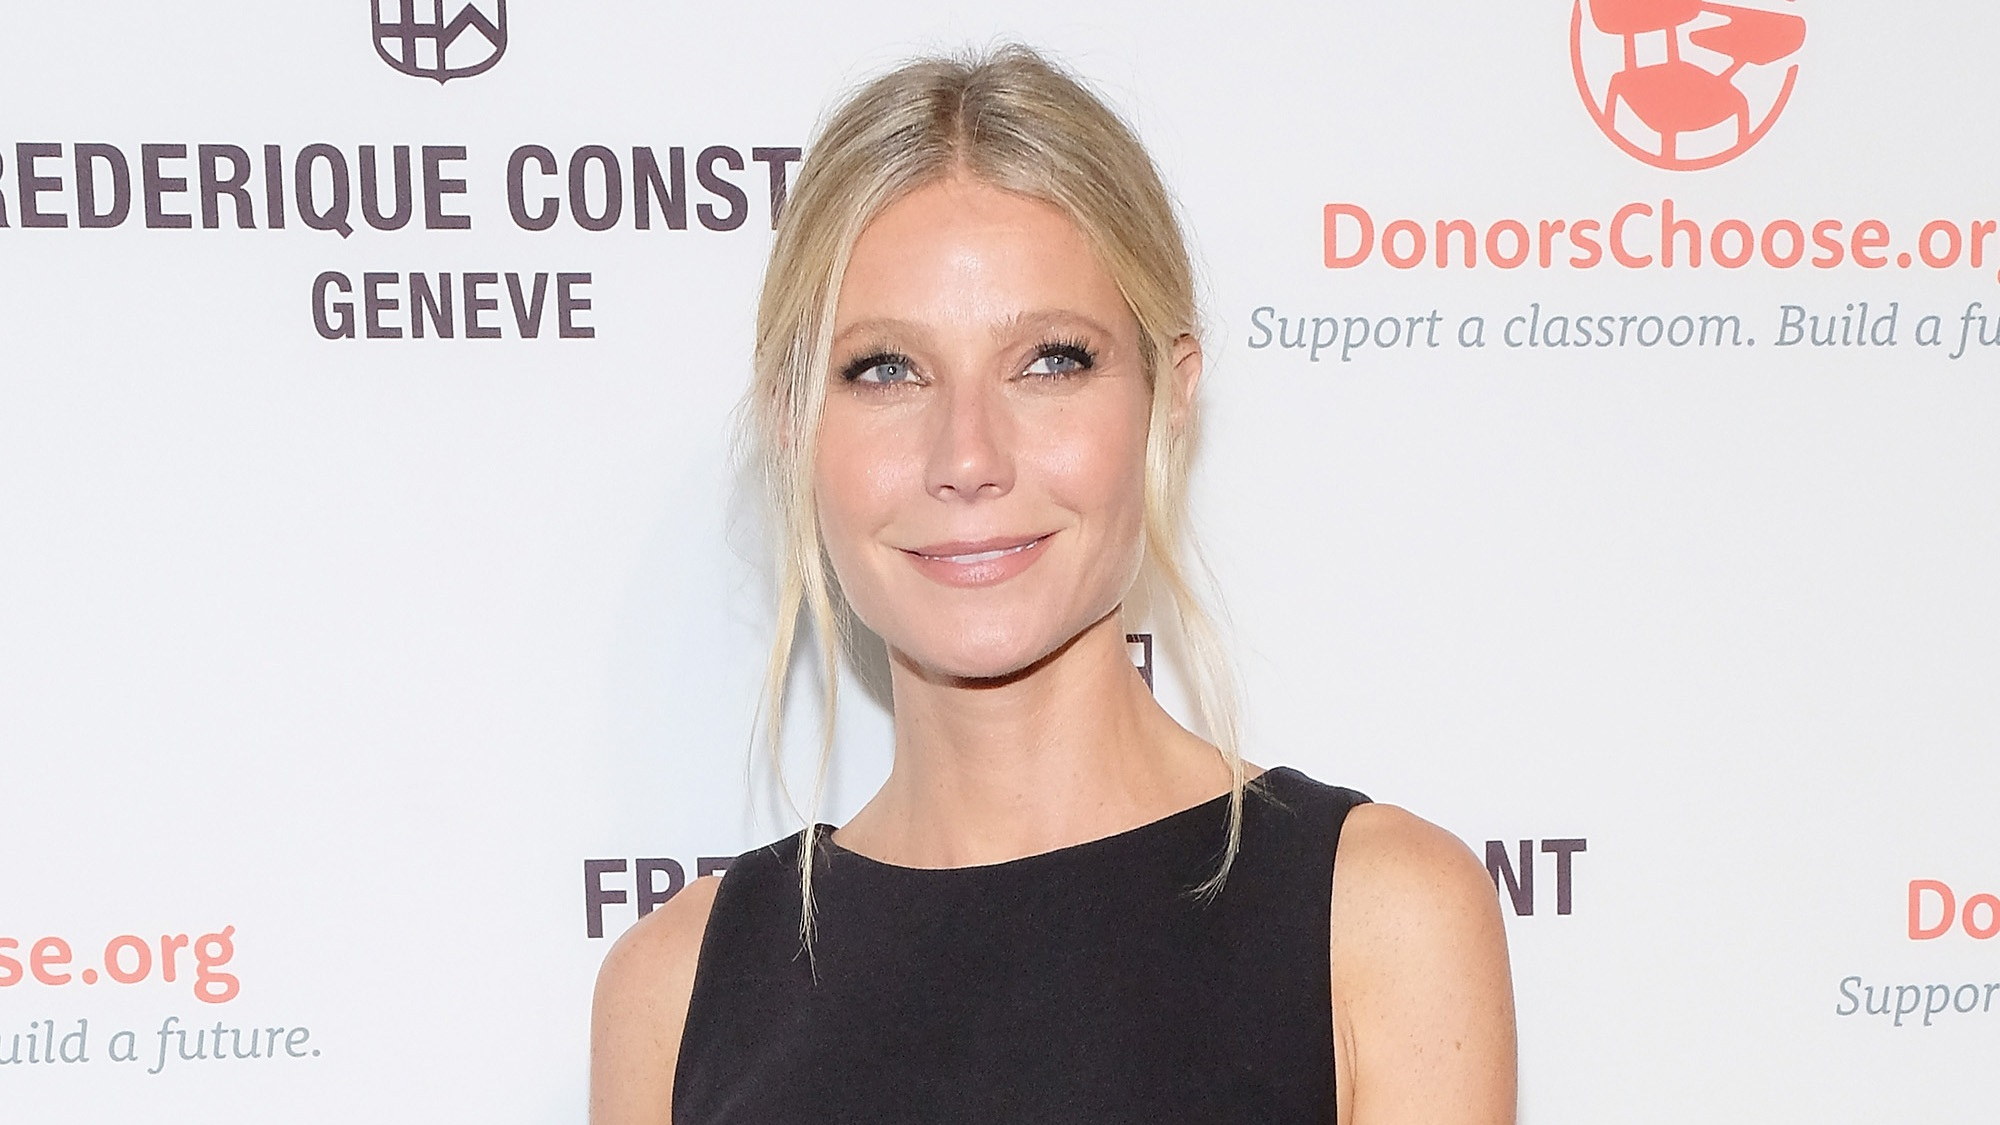 "Actress Gwyneth Paltrow has reportedly been sued for an alleged hit-and-run accident that took place in Utah during a ski trip a few years ago. However, the Marvel star claims the man's allegations are ""completely without merit"" in a statement she released to E! News on January 29. The plaintiff in the lawsuit, Terry Sanderson, 46, is accusing Paltrow, 46, of crashing into him at the Deer Valley Resort back in February 2016. He claims the Iron Man actress was skiing ""out of control"" before they collided at a high impact. The complaint alleges that she knocked him ""down hard, knocking him out, and causing a brain surgery, four broken ribs and other injuries."" Skiers are required to ""immediately stop at the scene of such collision and render to any person injured in such collision reasonable assistance,"" according to the Skier Responsibility Code. One of the rules is that anyone involved in an accident ""shall give their name and address to an employee of the ski area operator,"" however Sanderson claims that Paltrow didn't comply with the ordinance. ""Paltrow got up, turned and skied away, leaving Sanderson stunned, lying in the snow, seriously injured,"" the doctor, who was 44 at the time of the collision, said. A witness also claimed to see the same thing. On top of that, the complaint notes how the Deer Valley instructor who taught the actress how to ski ""filled out and signed an incident report falsely stating that Gwyneth Paltrow did not cause the crash even though [the ski instructor] did not see the crash."" Sanderson and his lawyer will reportedly be seeking reparations and claim the value of the damage is ""more than $3,100,000."" On the other hand, Paltrow fired back and claims that ""this lawsuit is completely without merit,"" she told E! News in a statement. ""We expect to be vindicated."""